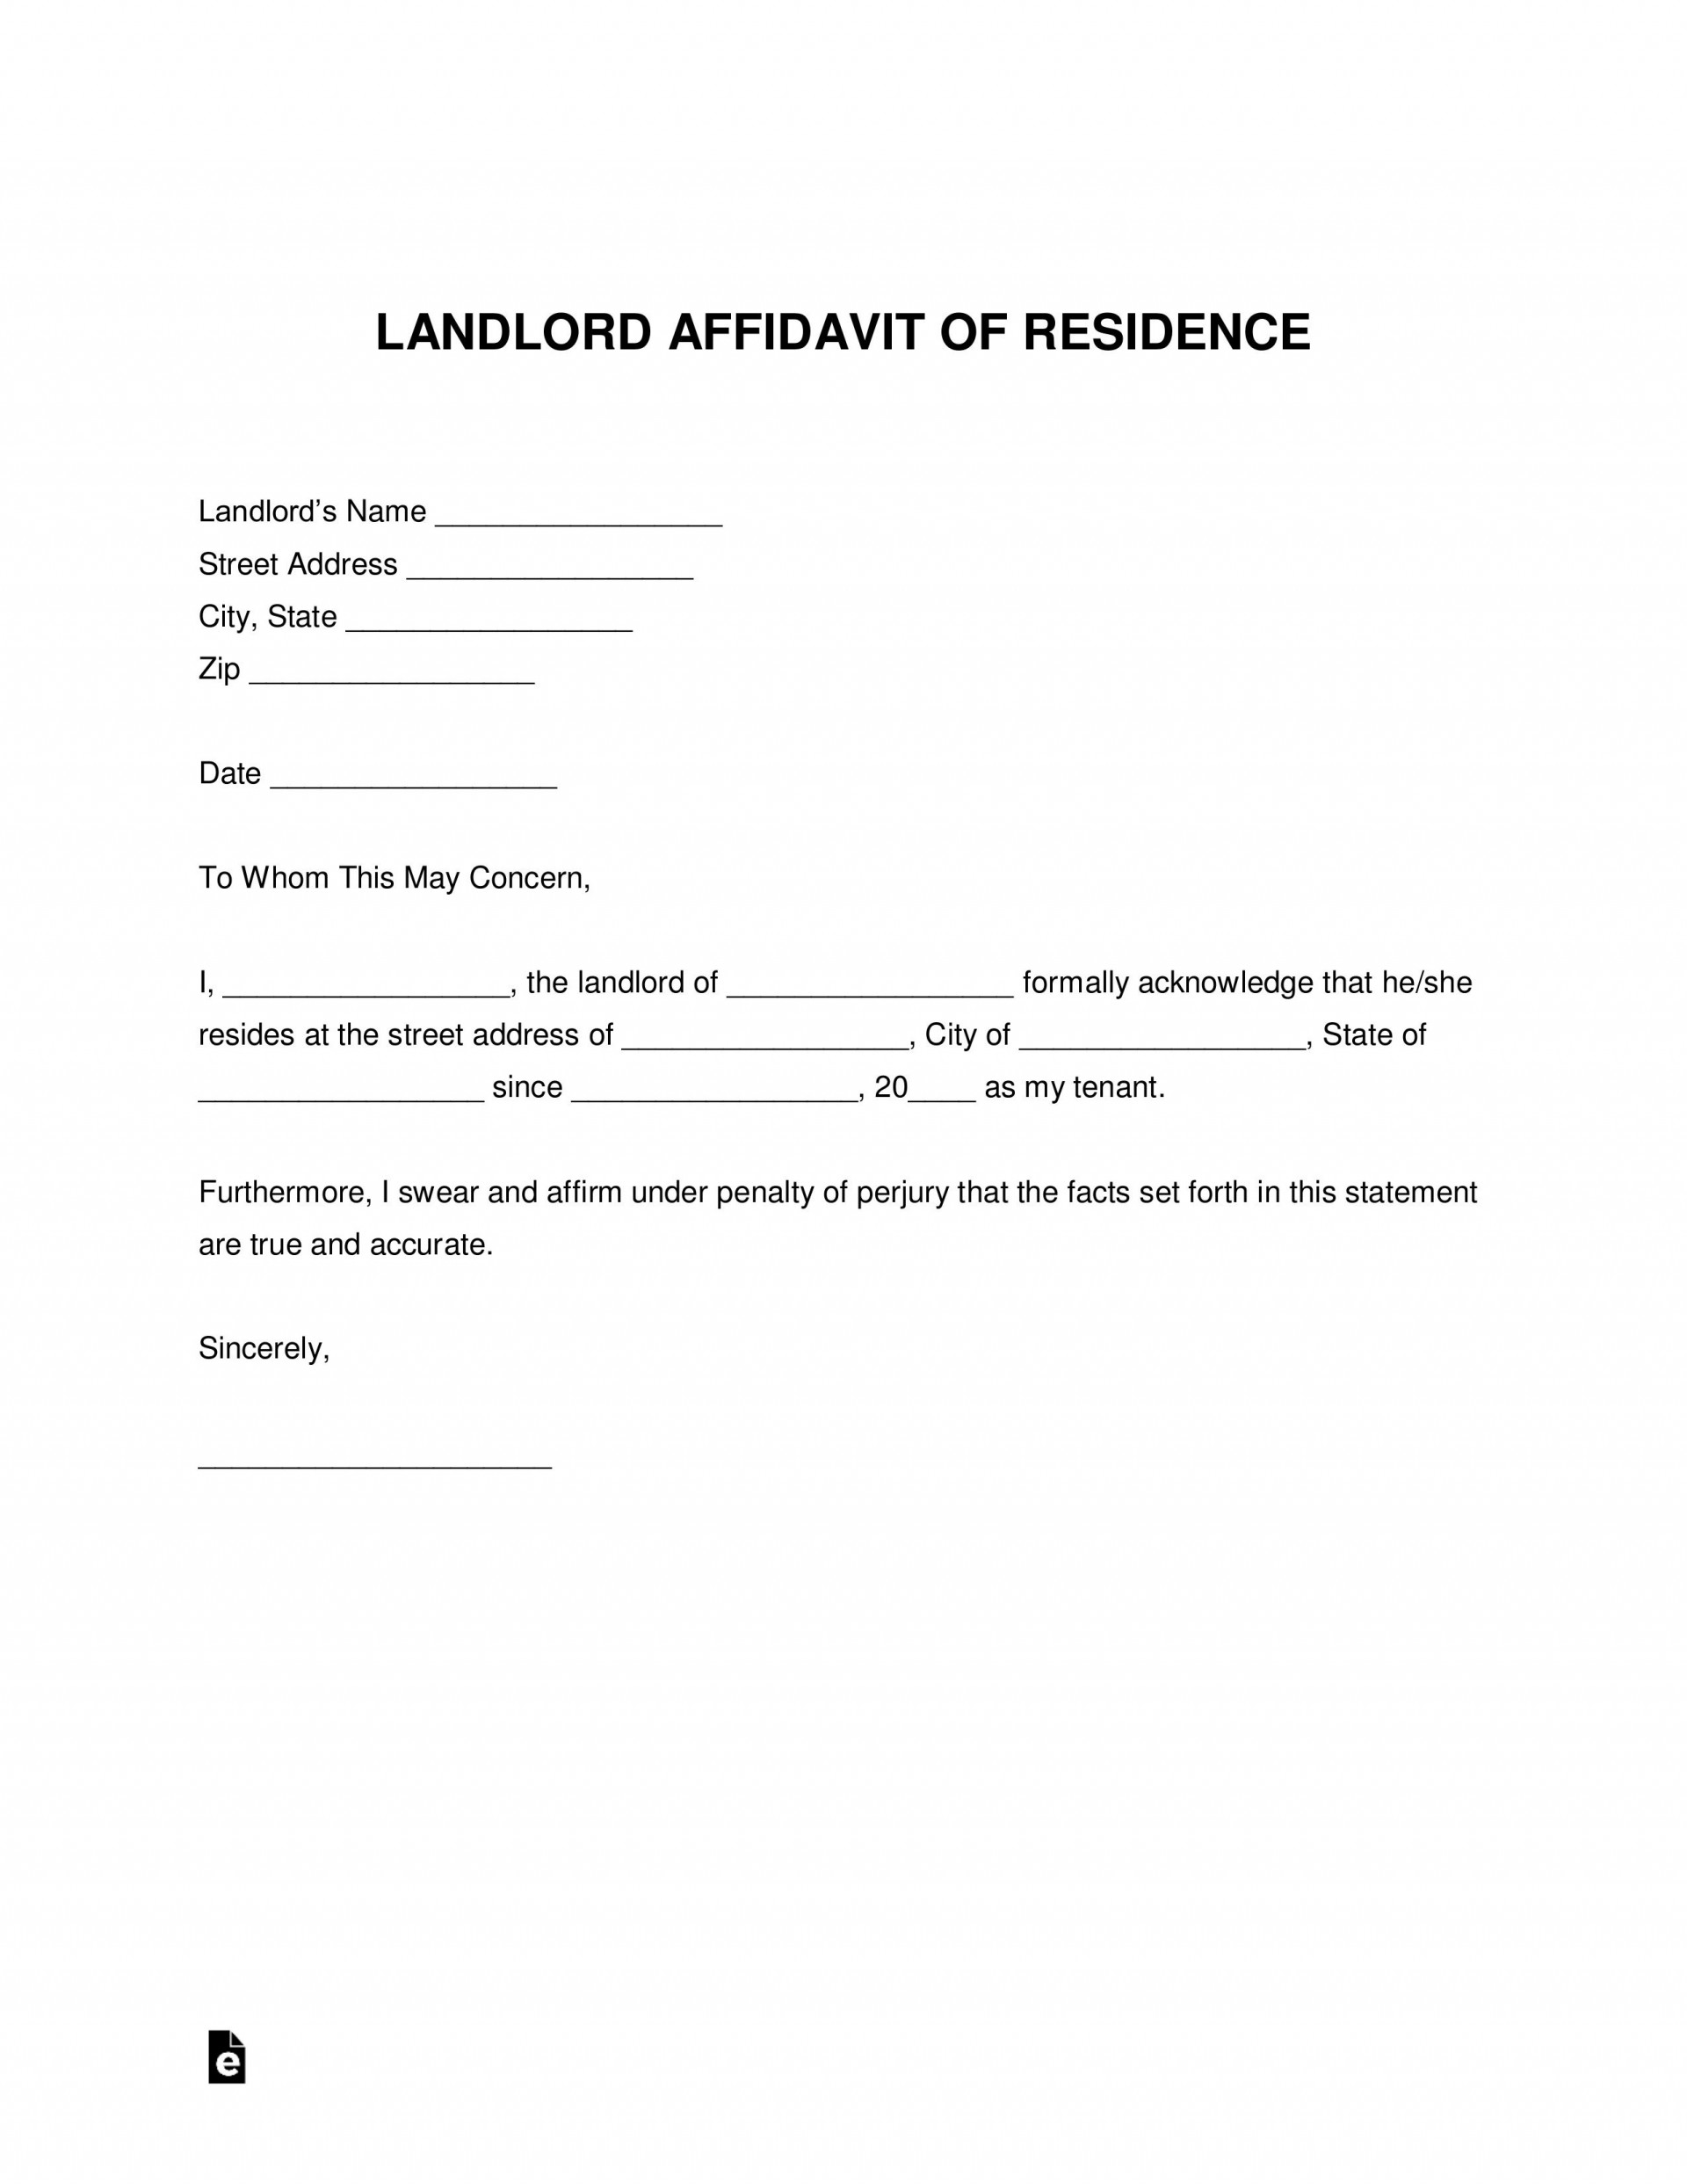 002 Astounding Proof Of Residency Letter Template High Resolution  Pdf From Landlord Family Member South Africa1920